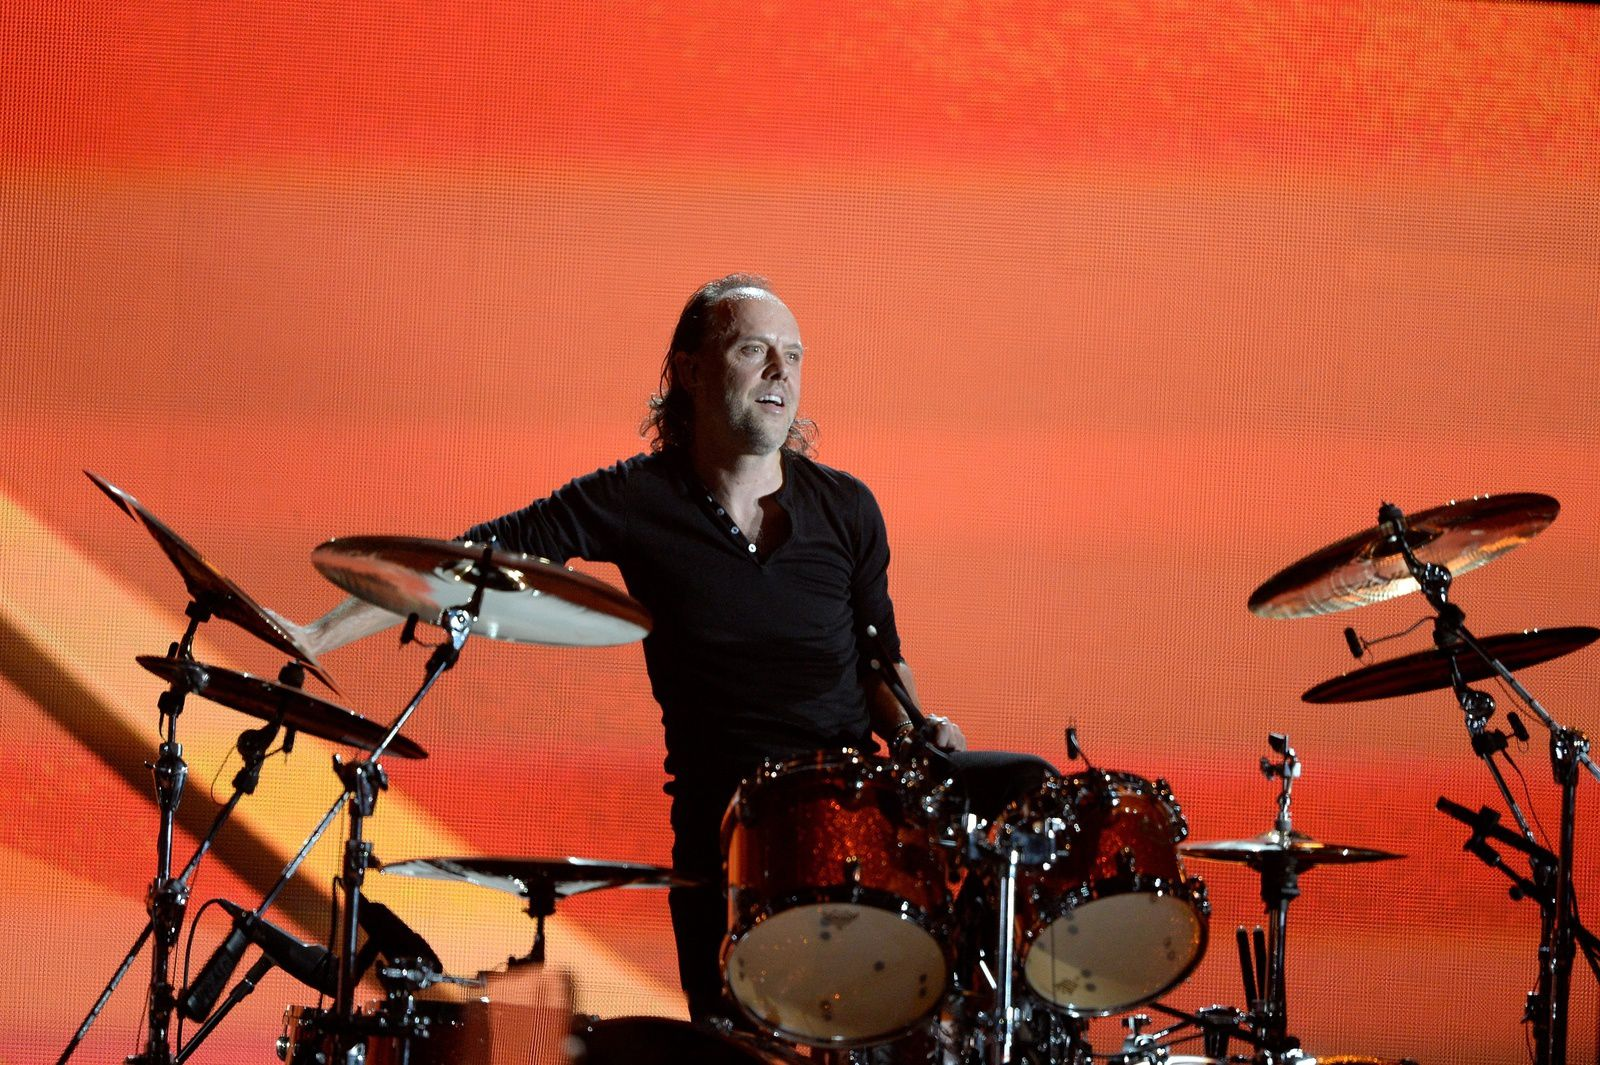 Lars Ulrich, Metallica - 56th GRAMMY Awards at Staples Center on January 26, 2014 in Los Angeles, California. (Photo by Kevork Djansezian Getty Images)